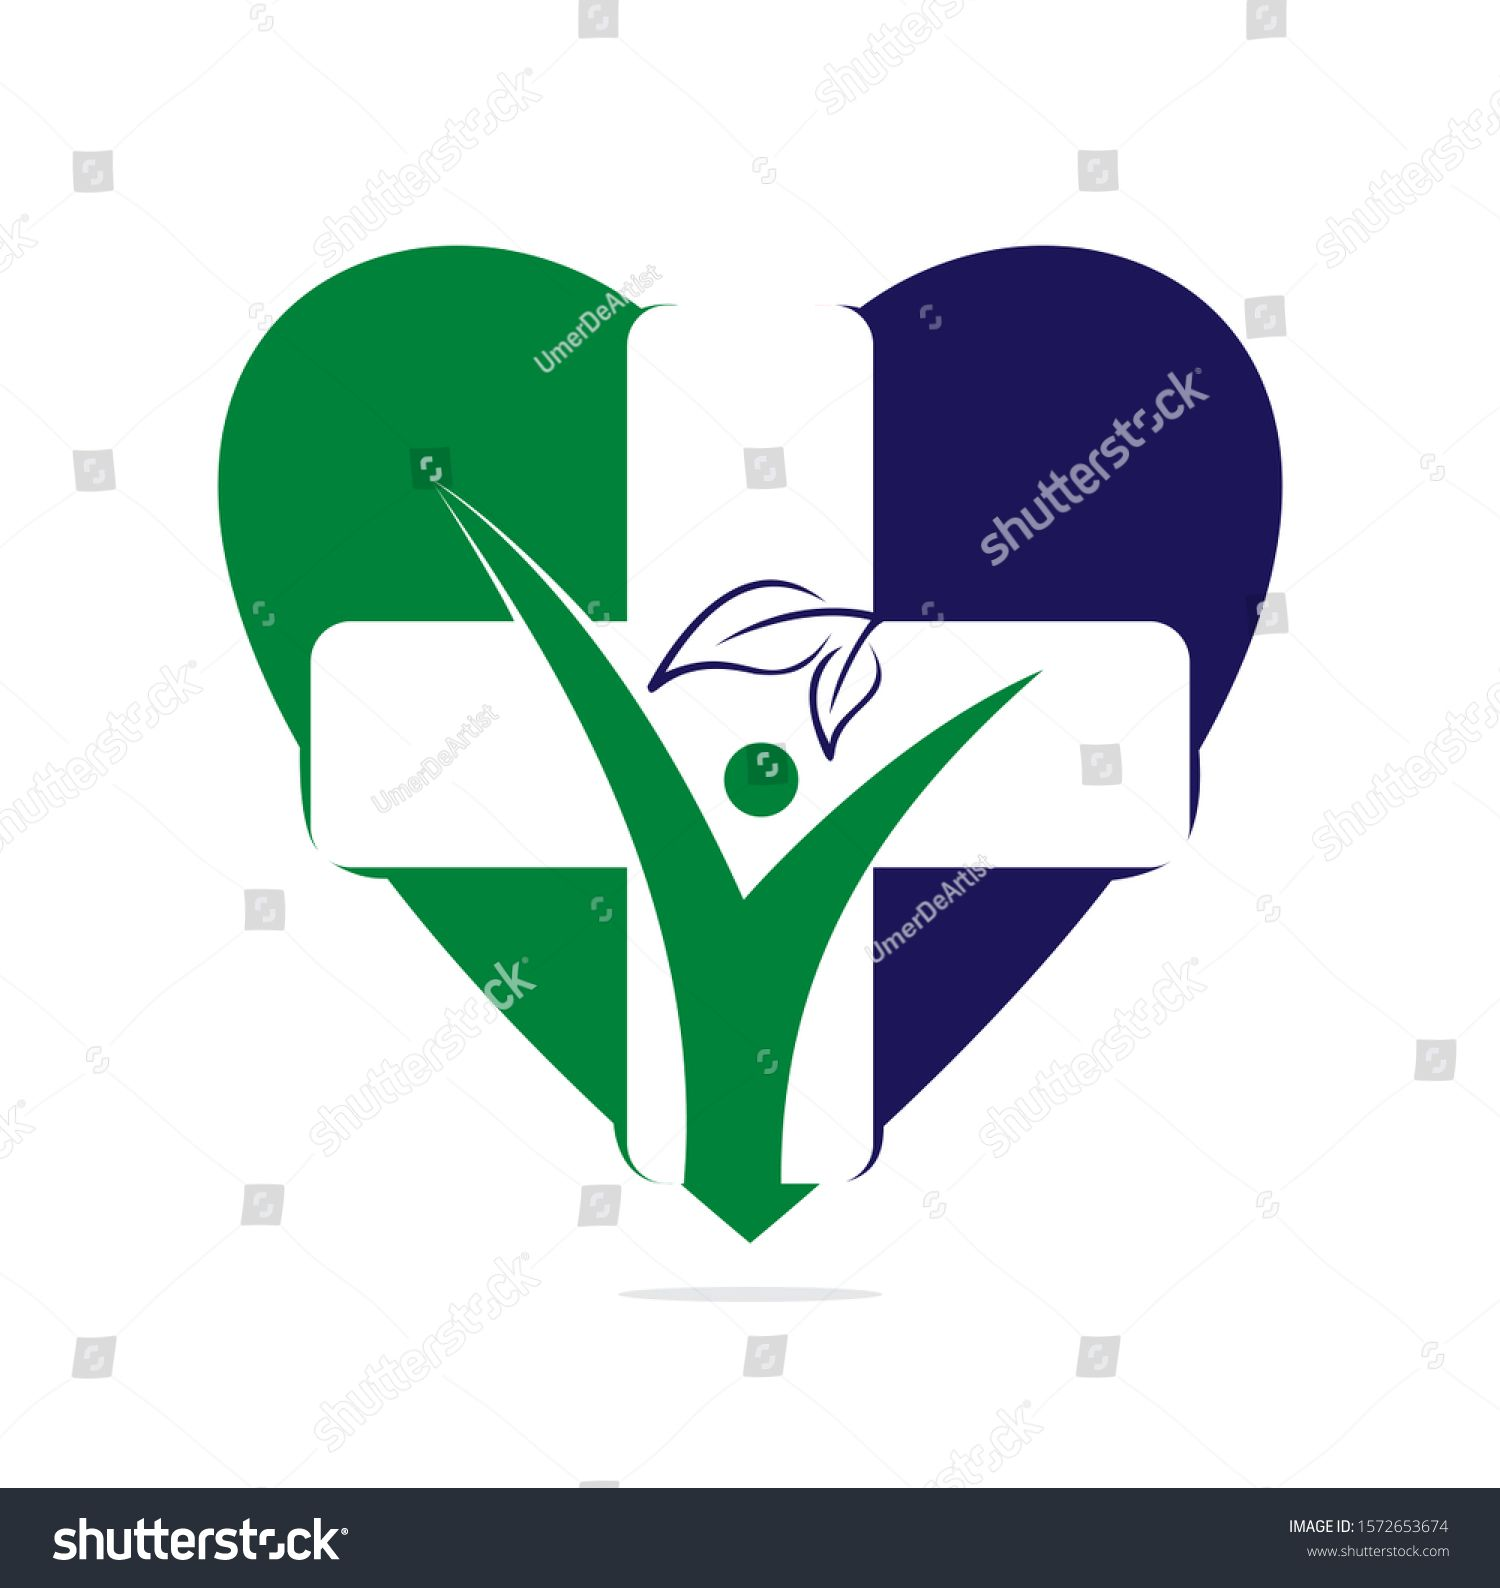 health heart shape logo  cross health concept Logo of the family doctor first aid Health and medical cabinett